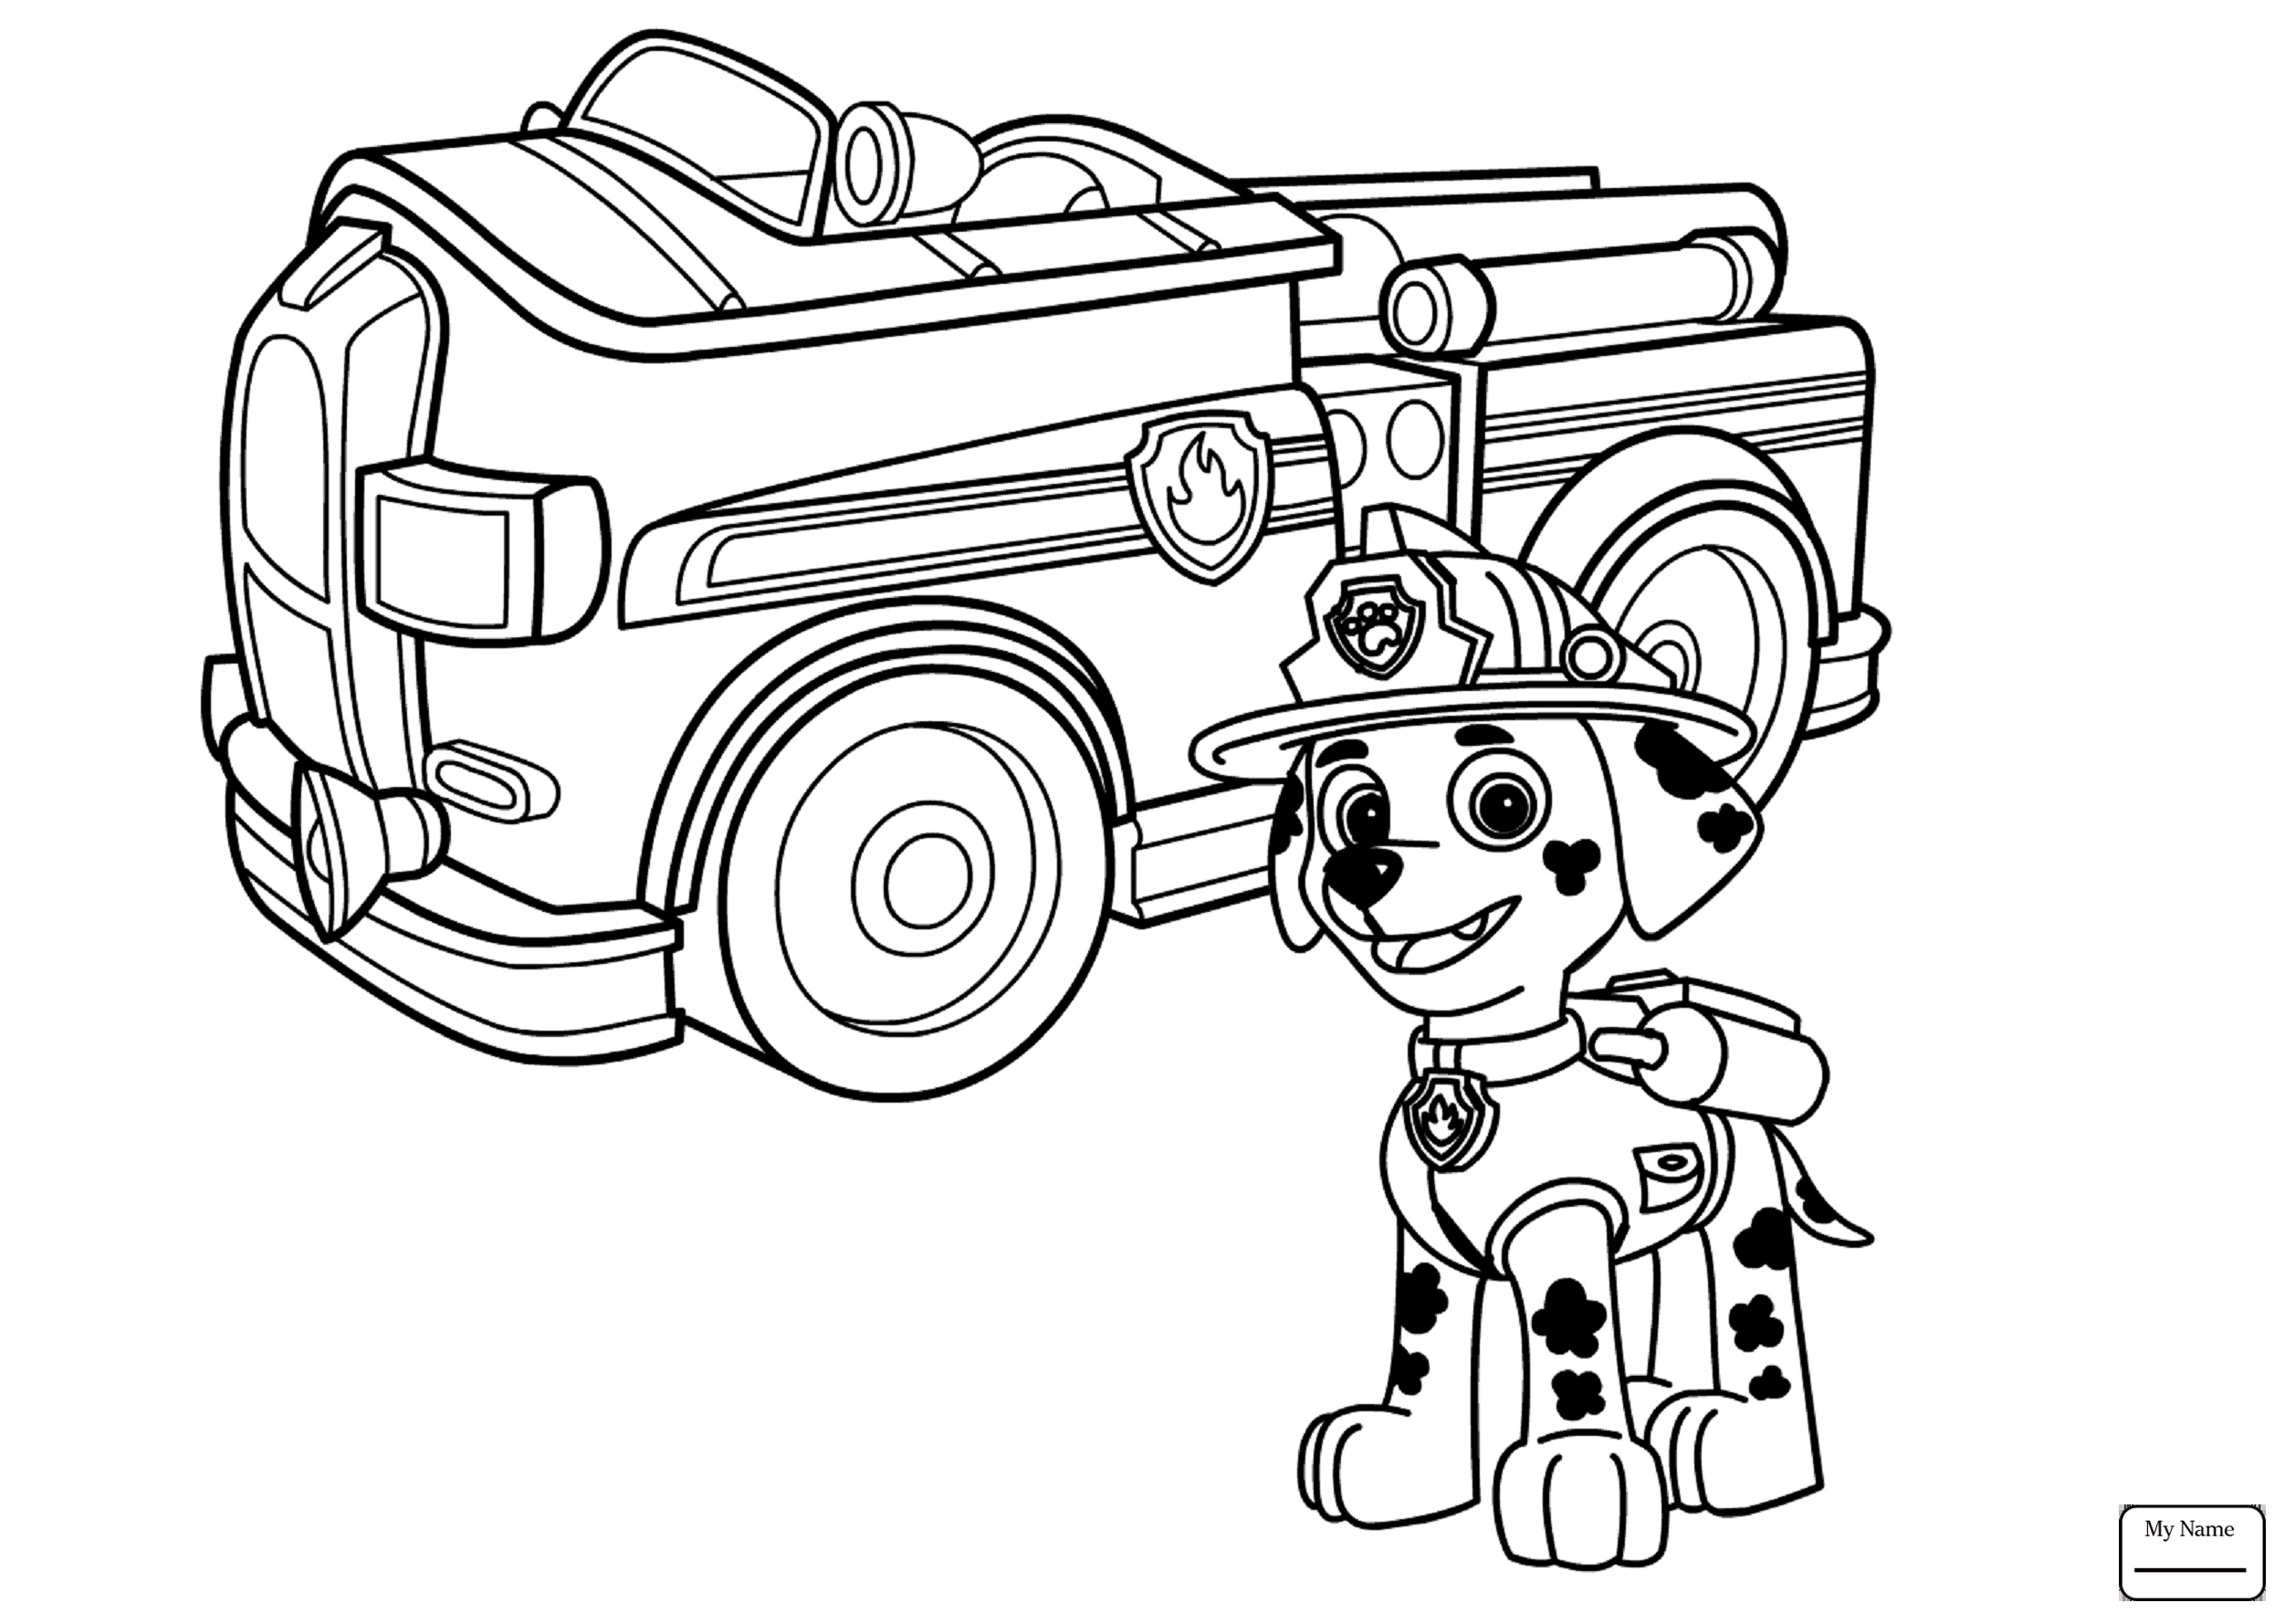 print paw patrol coloring pages paw patrol coloring pages printable 30 print color craft paw patrol pages coloring print